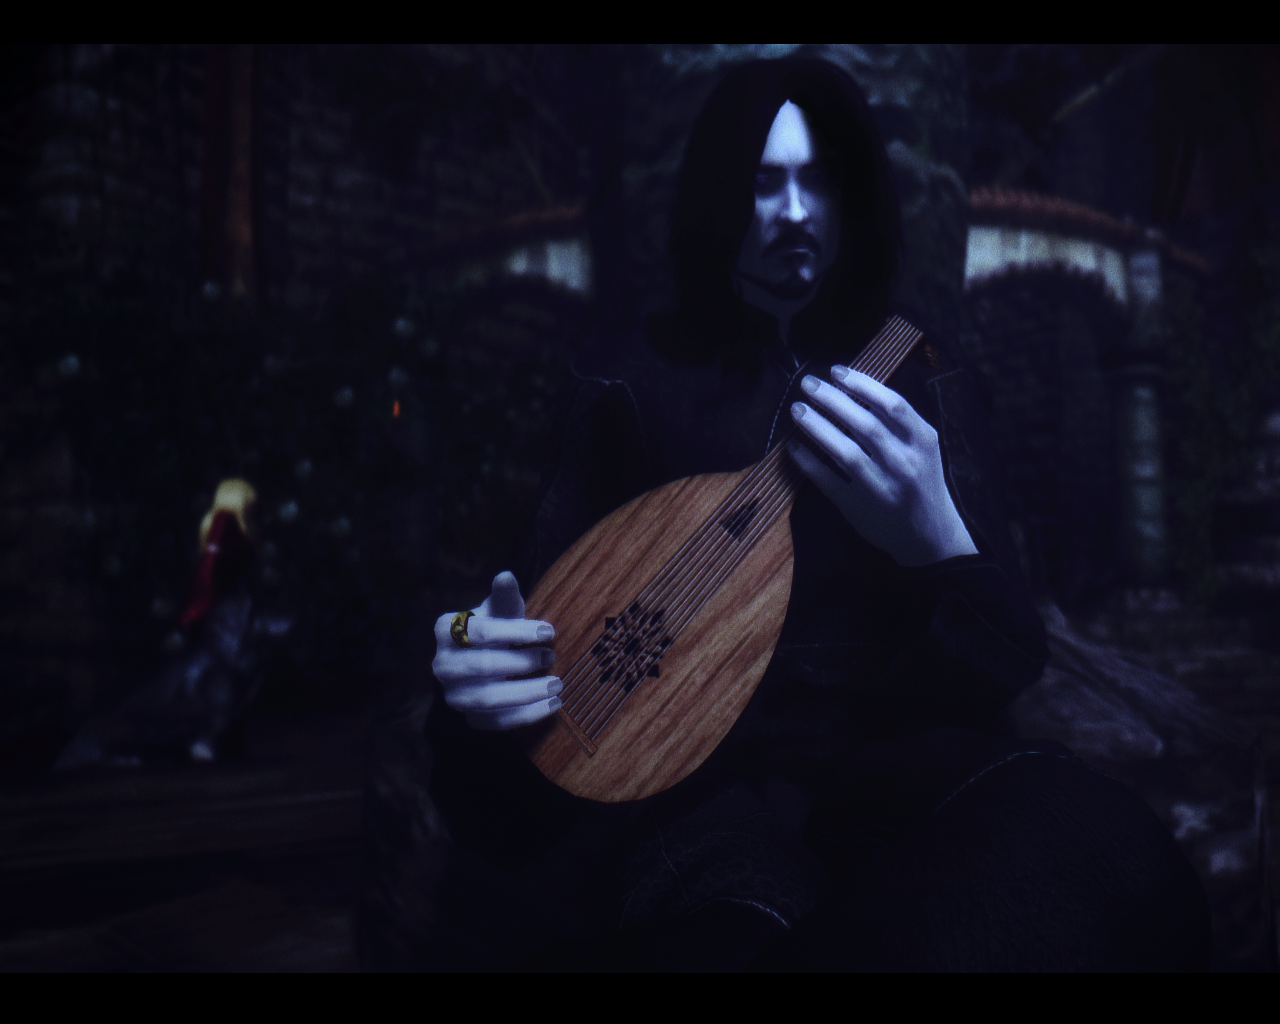 A lonely bard